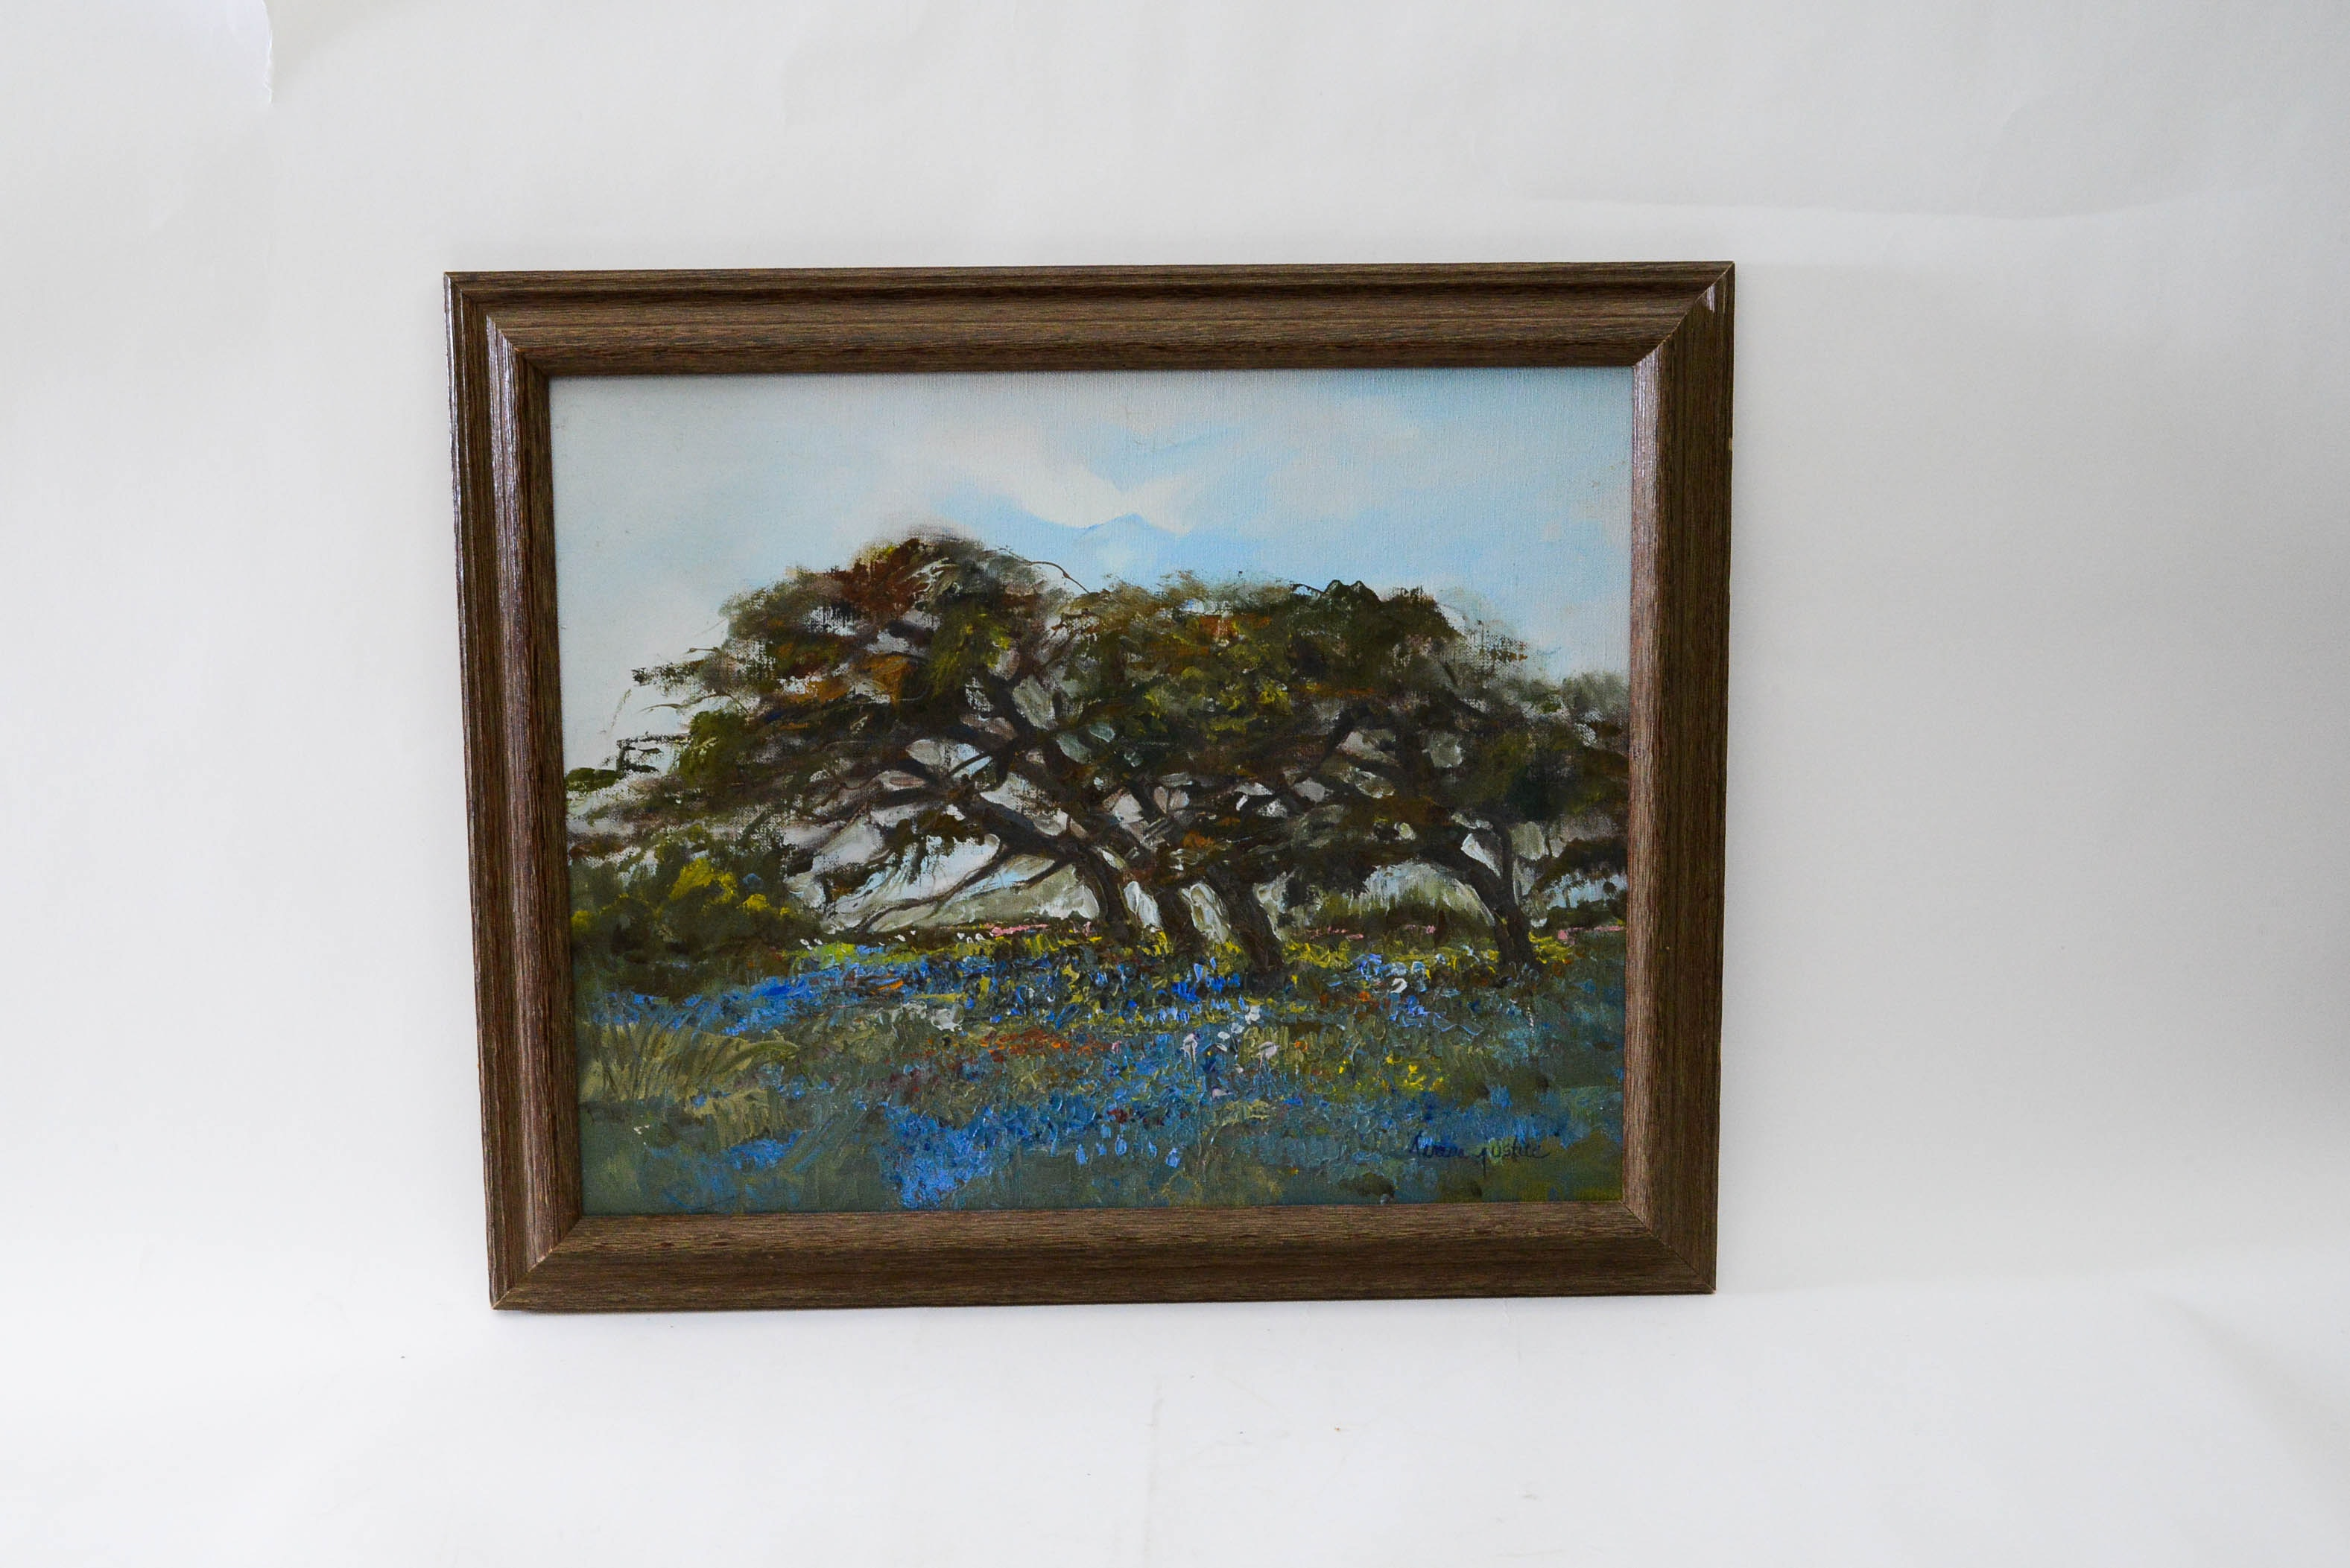 Framed Impressionist Oil on Canvas of Trees and Wild Flowers by Teresa Justice